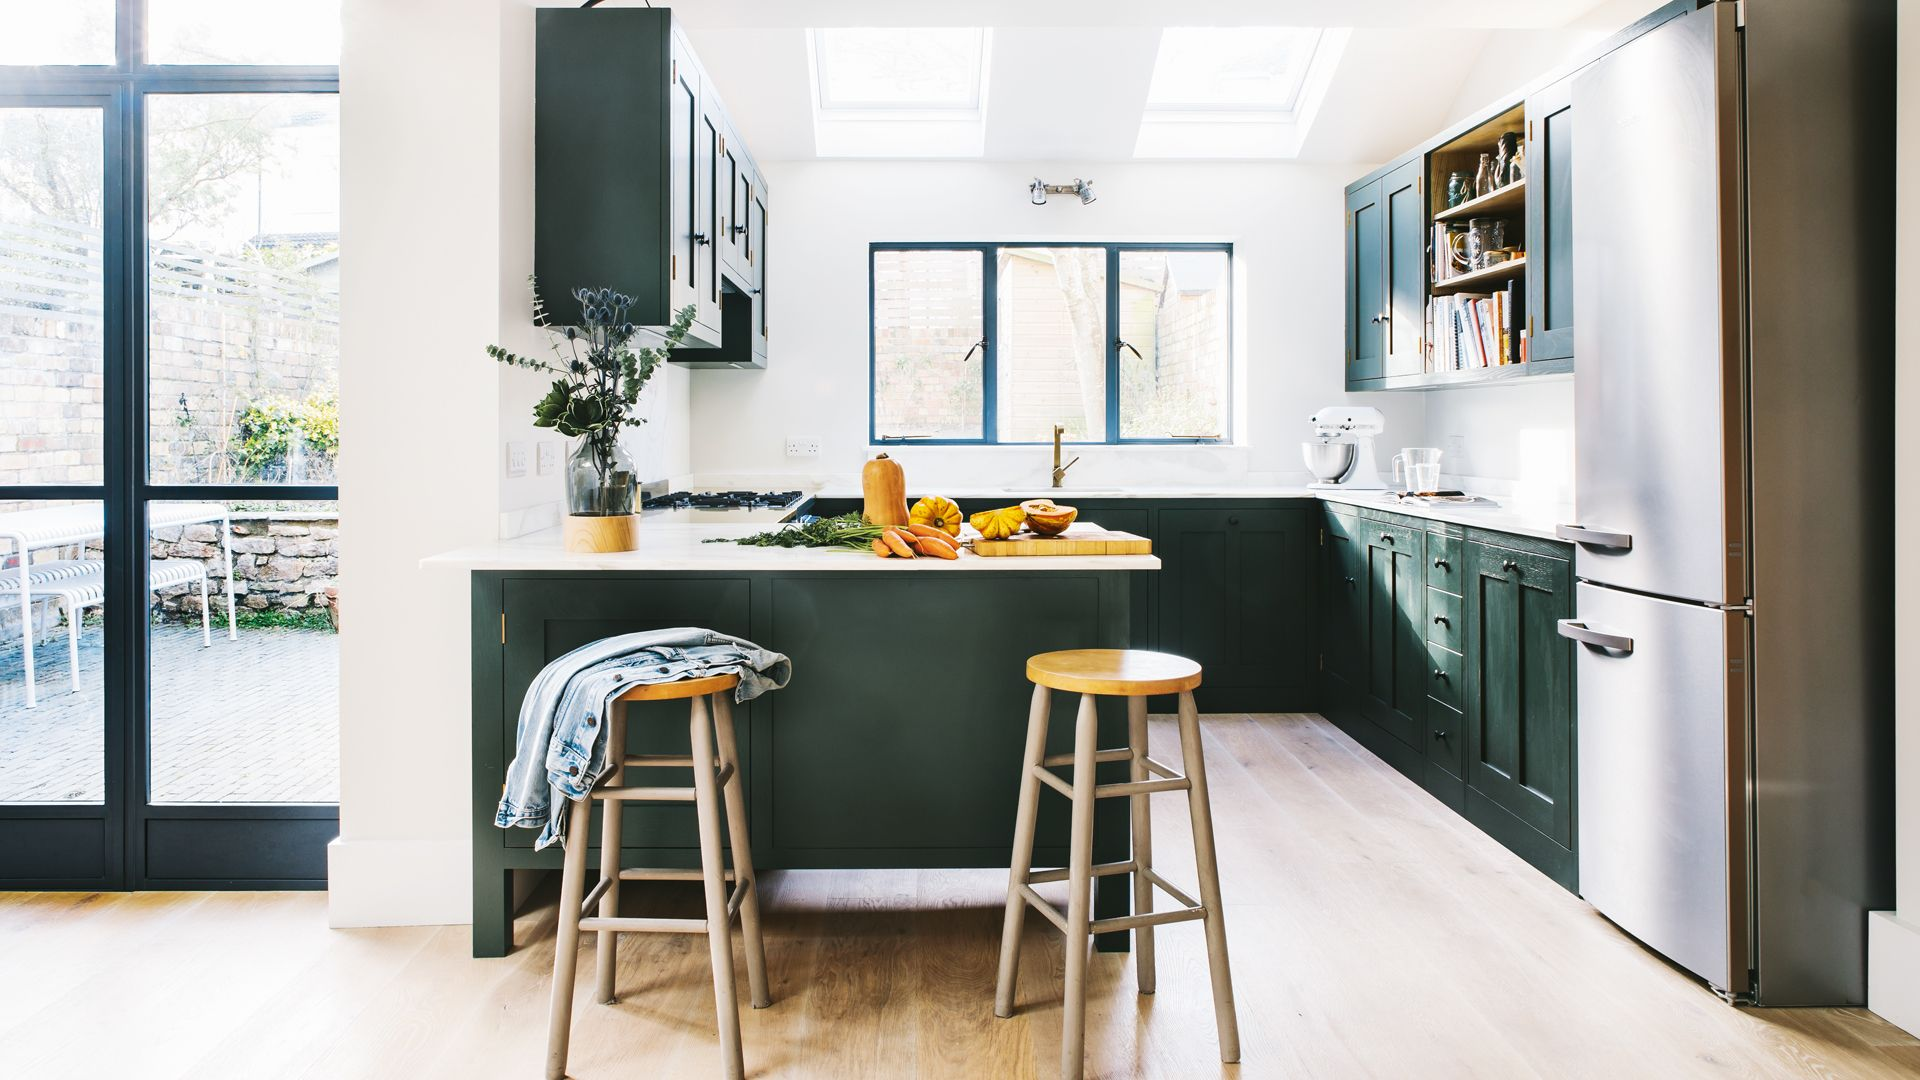 Want to save money on a new kitchen? Cheap kitchen